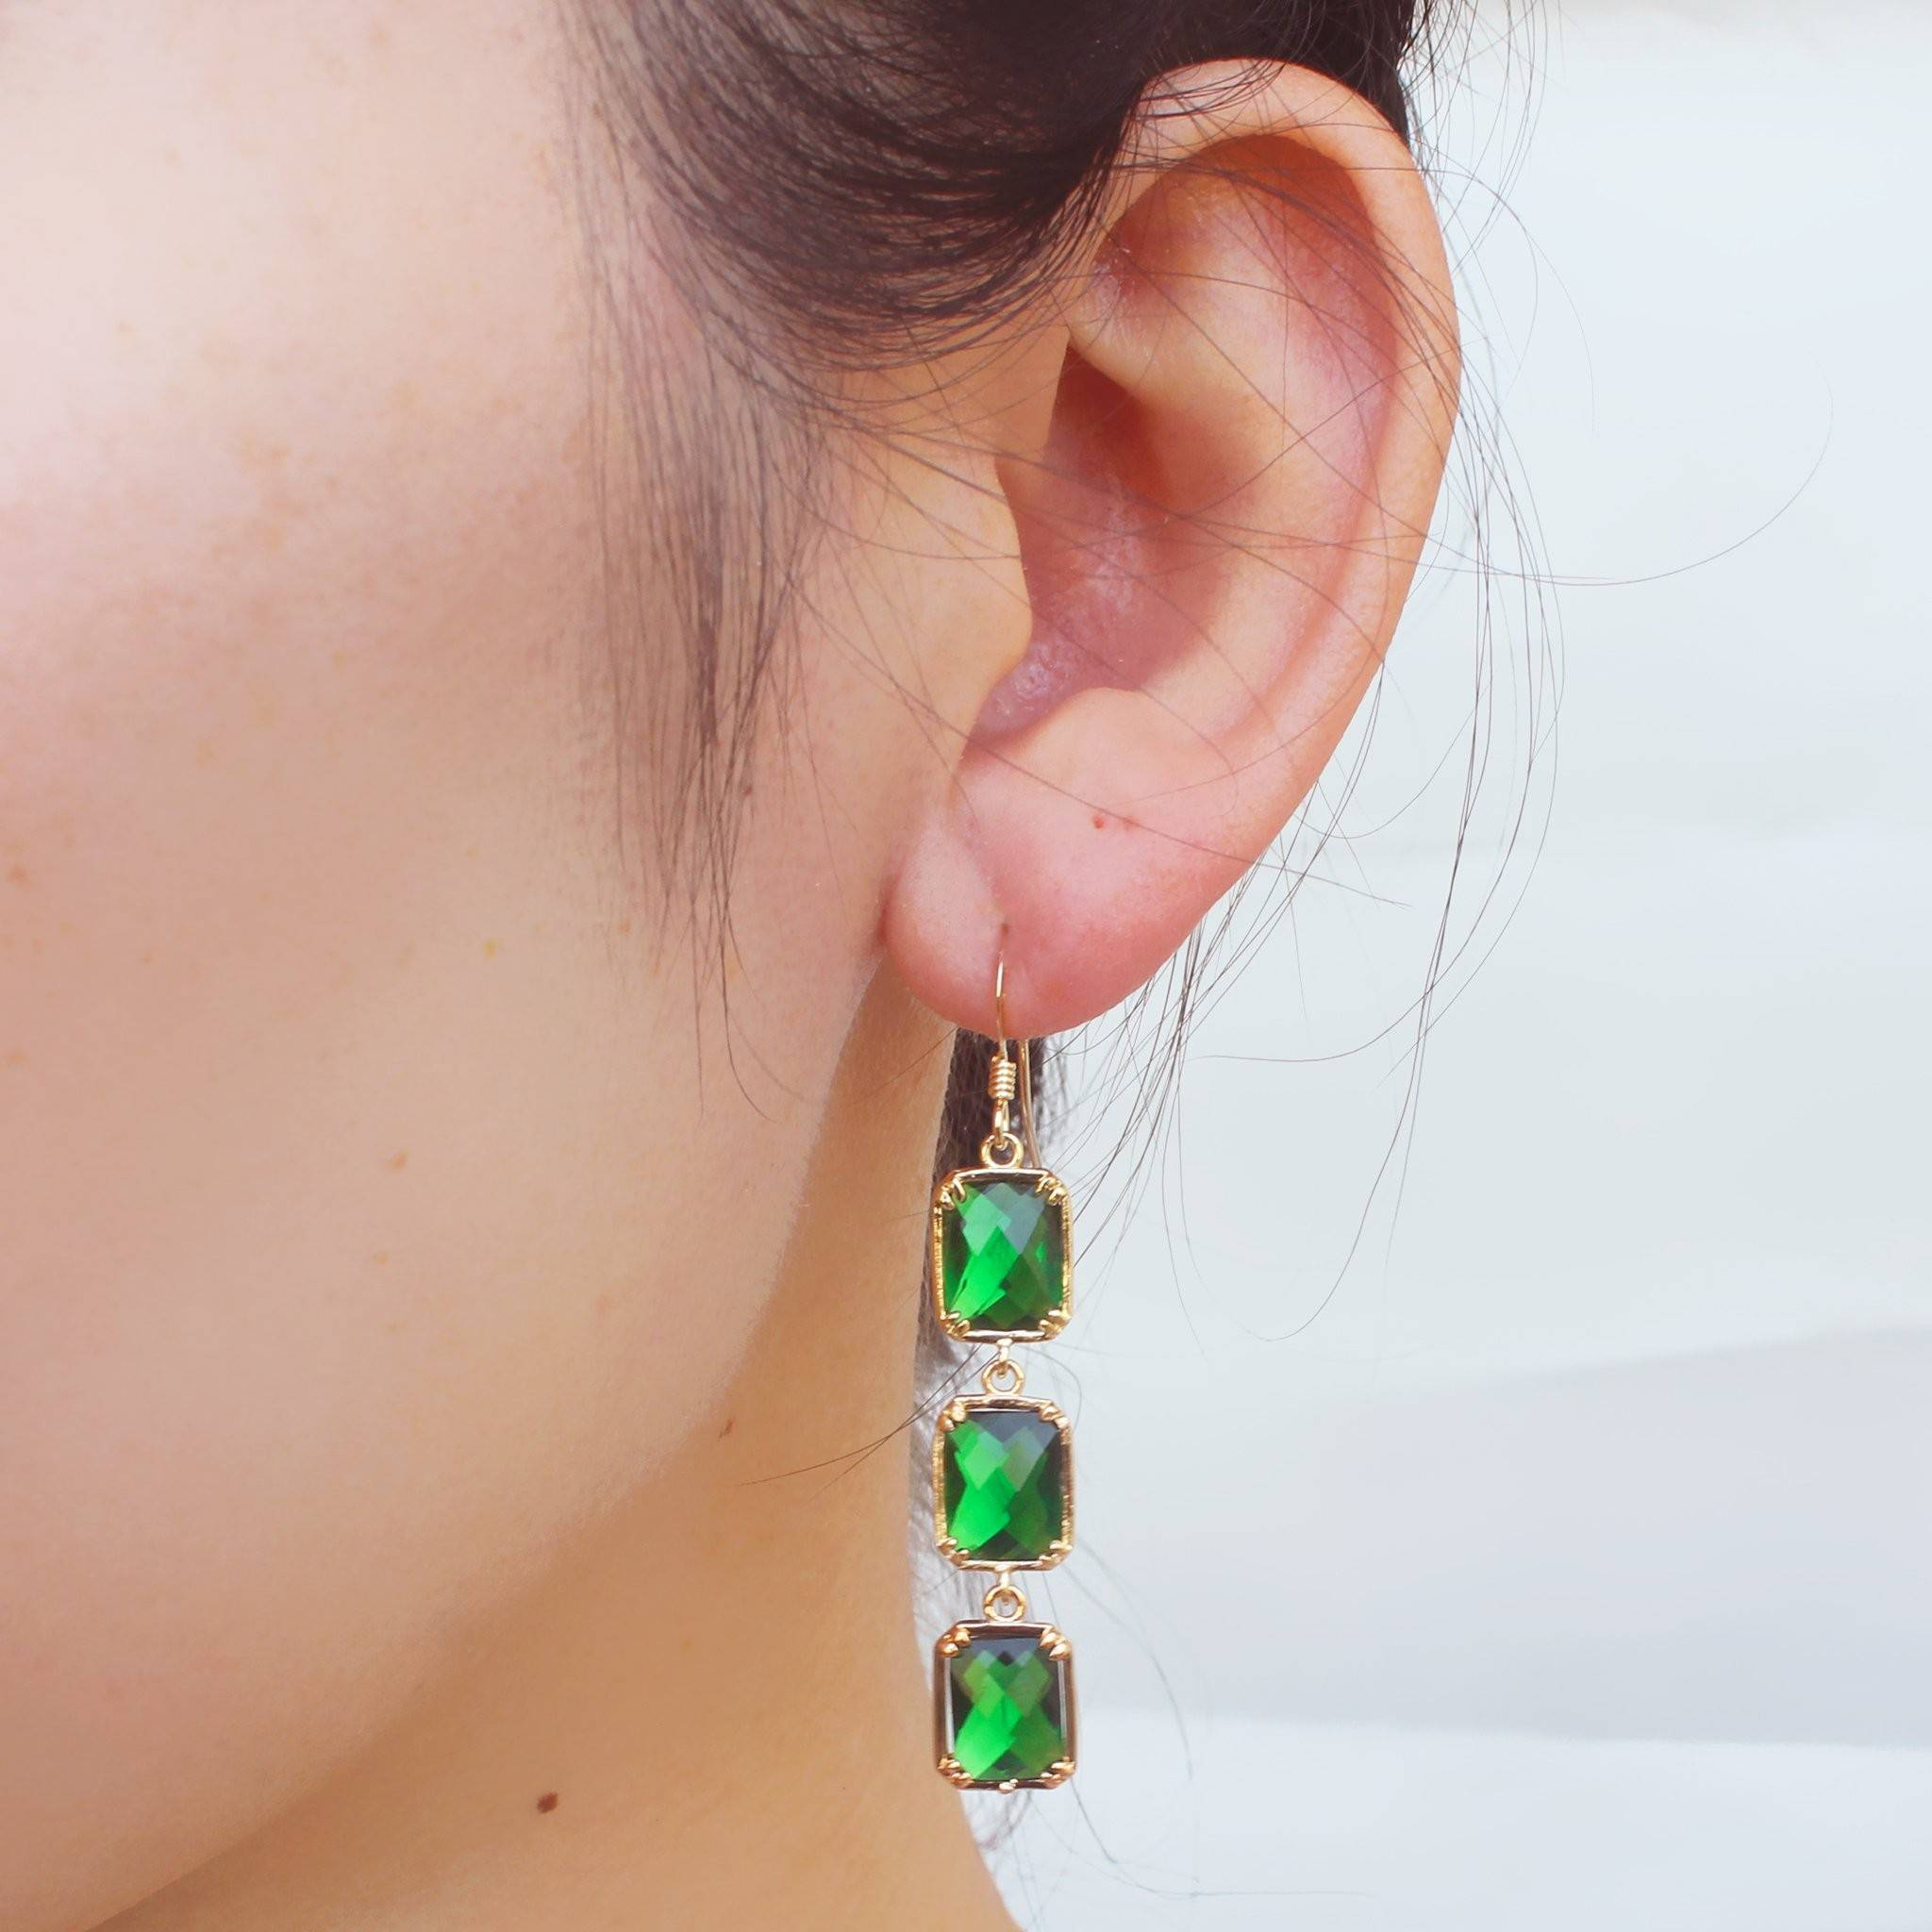 Chole Earrings